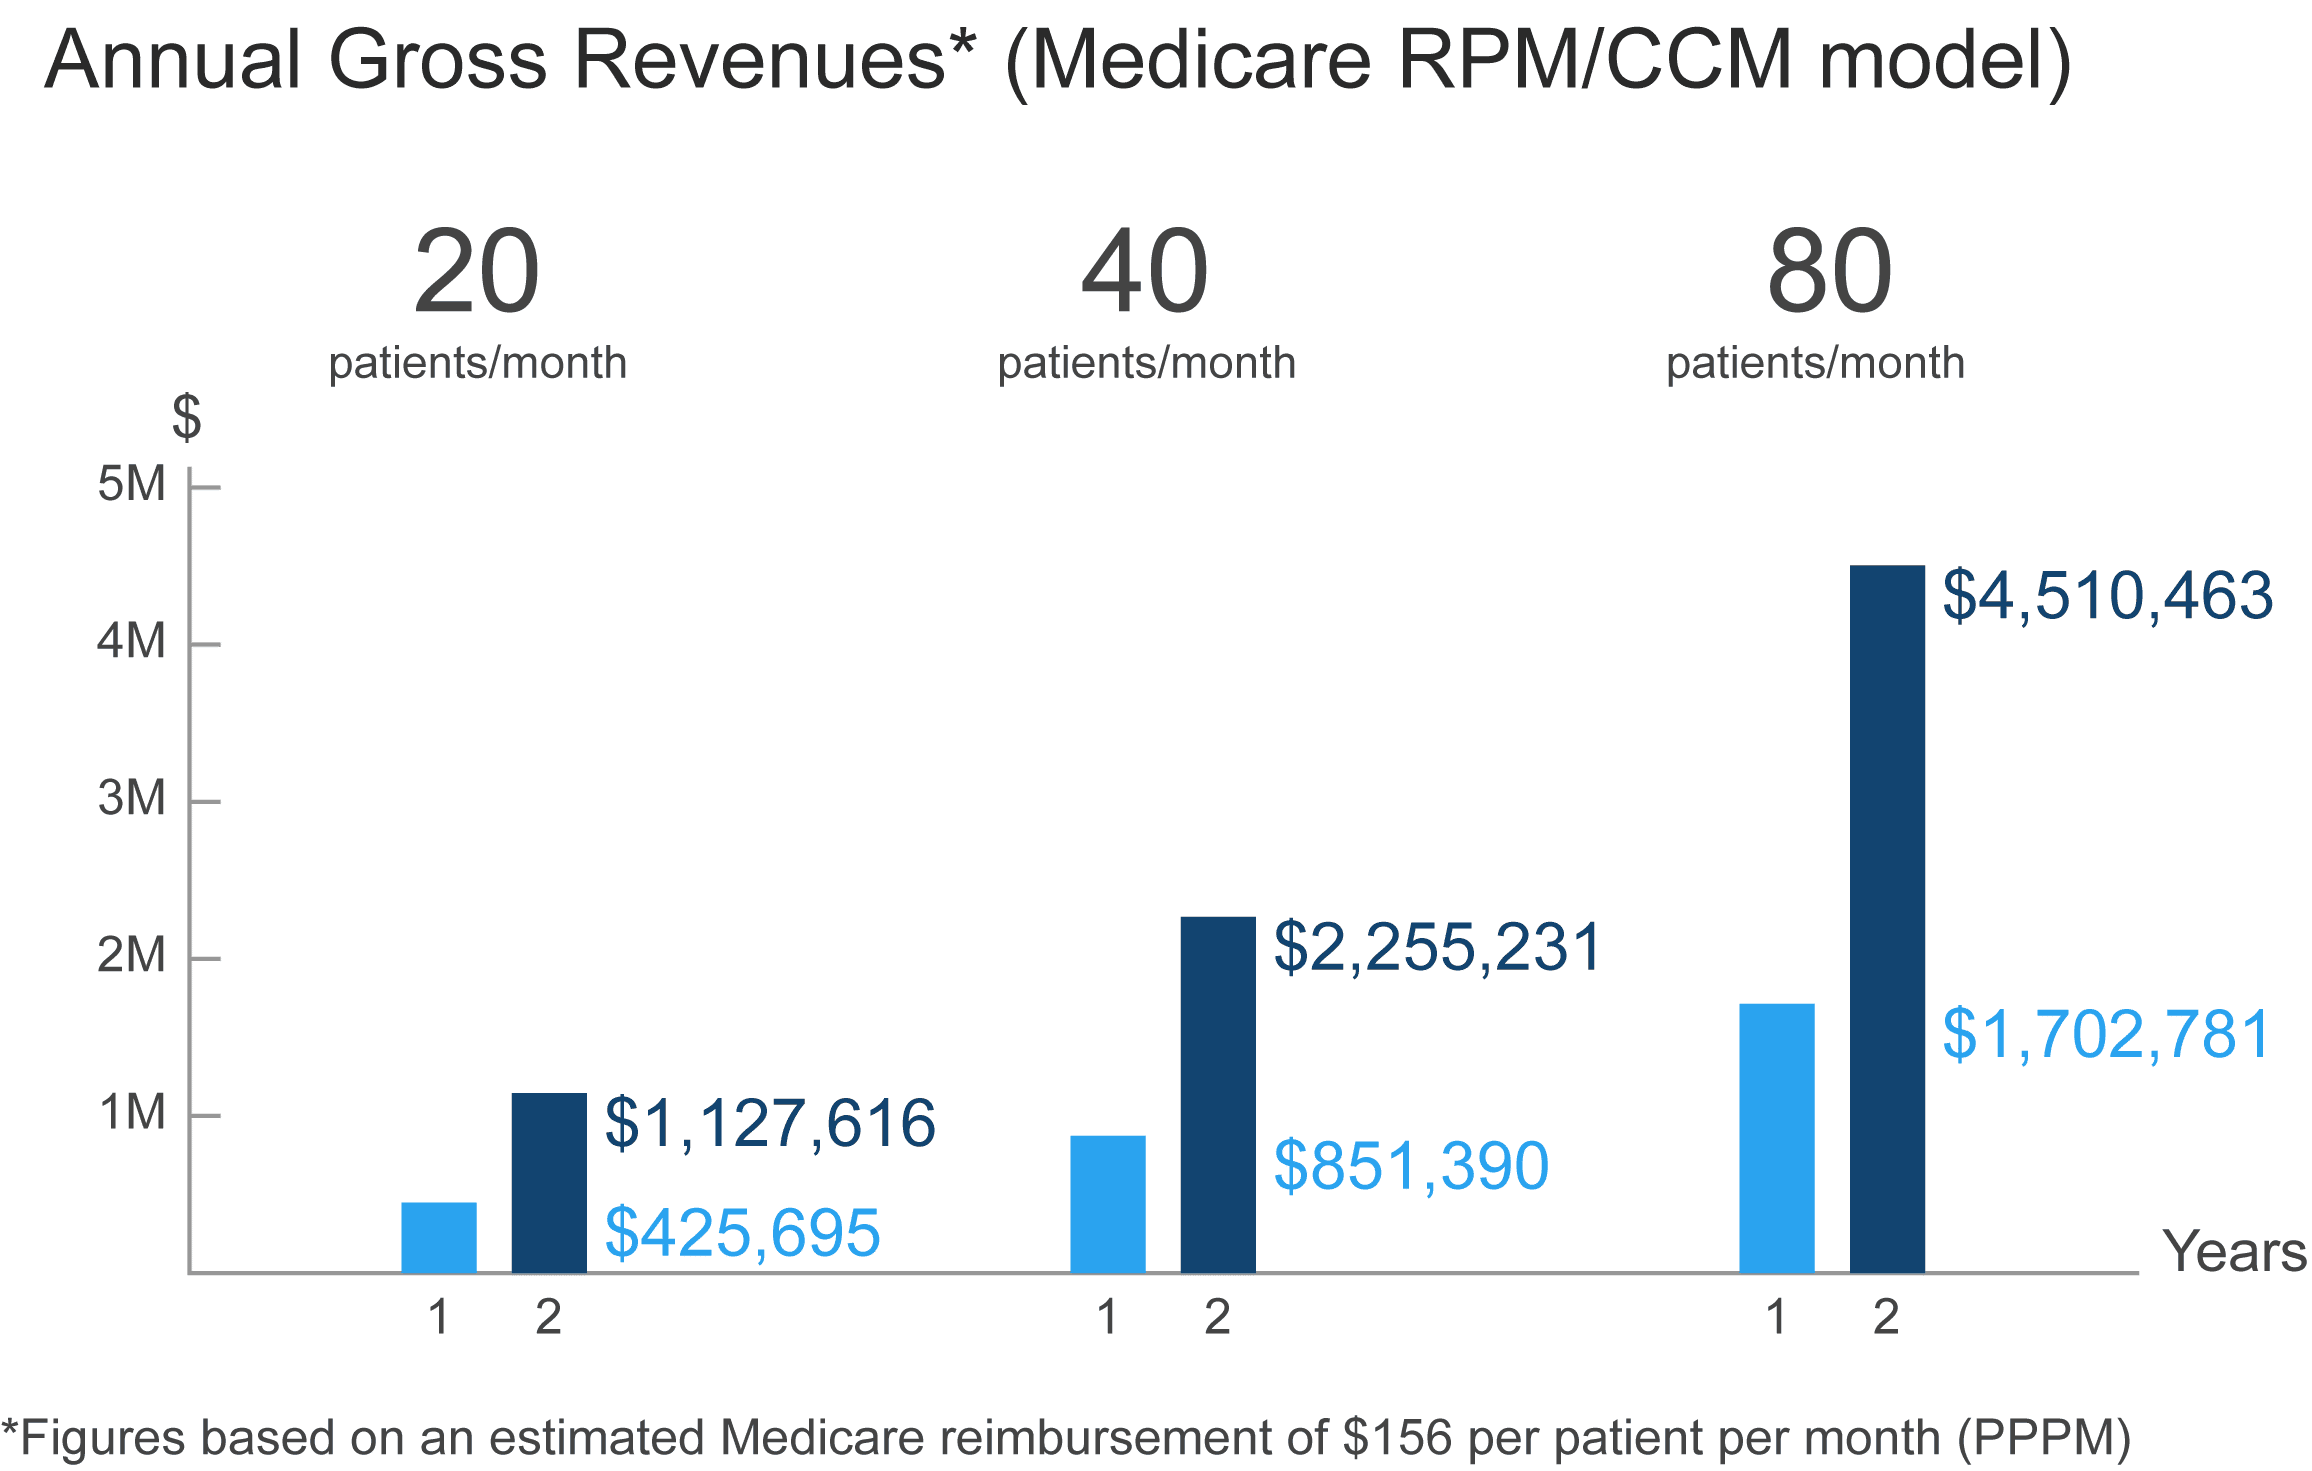 Annual Gross Revenues